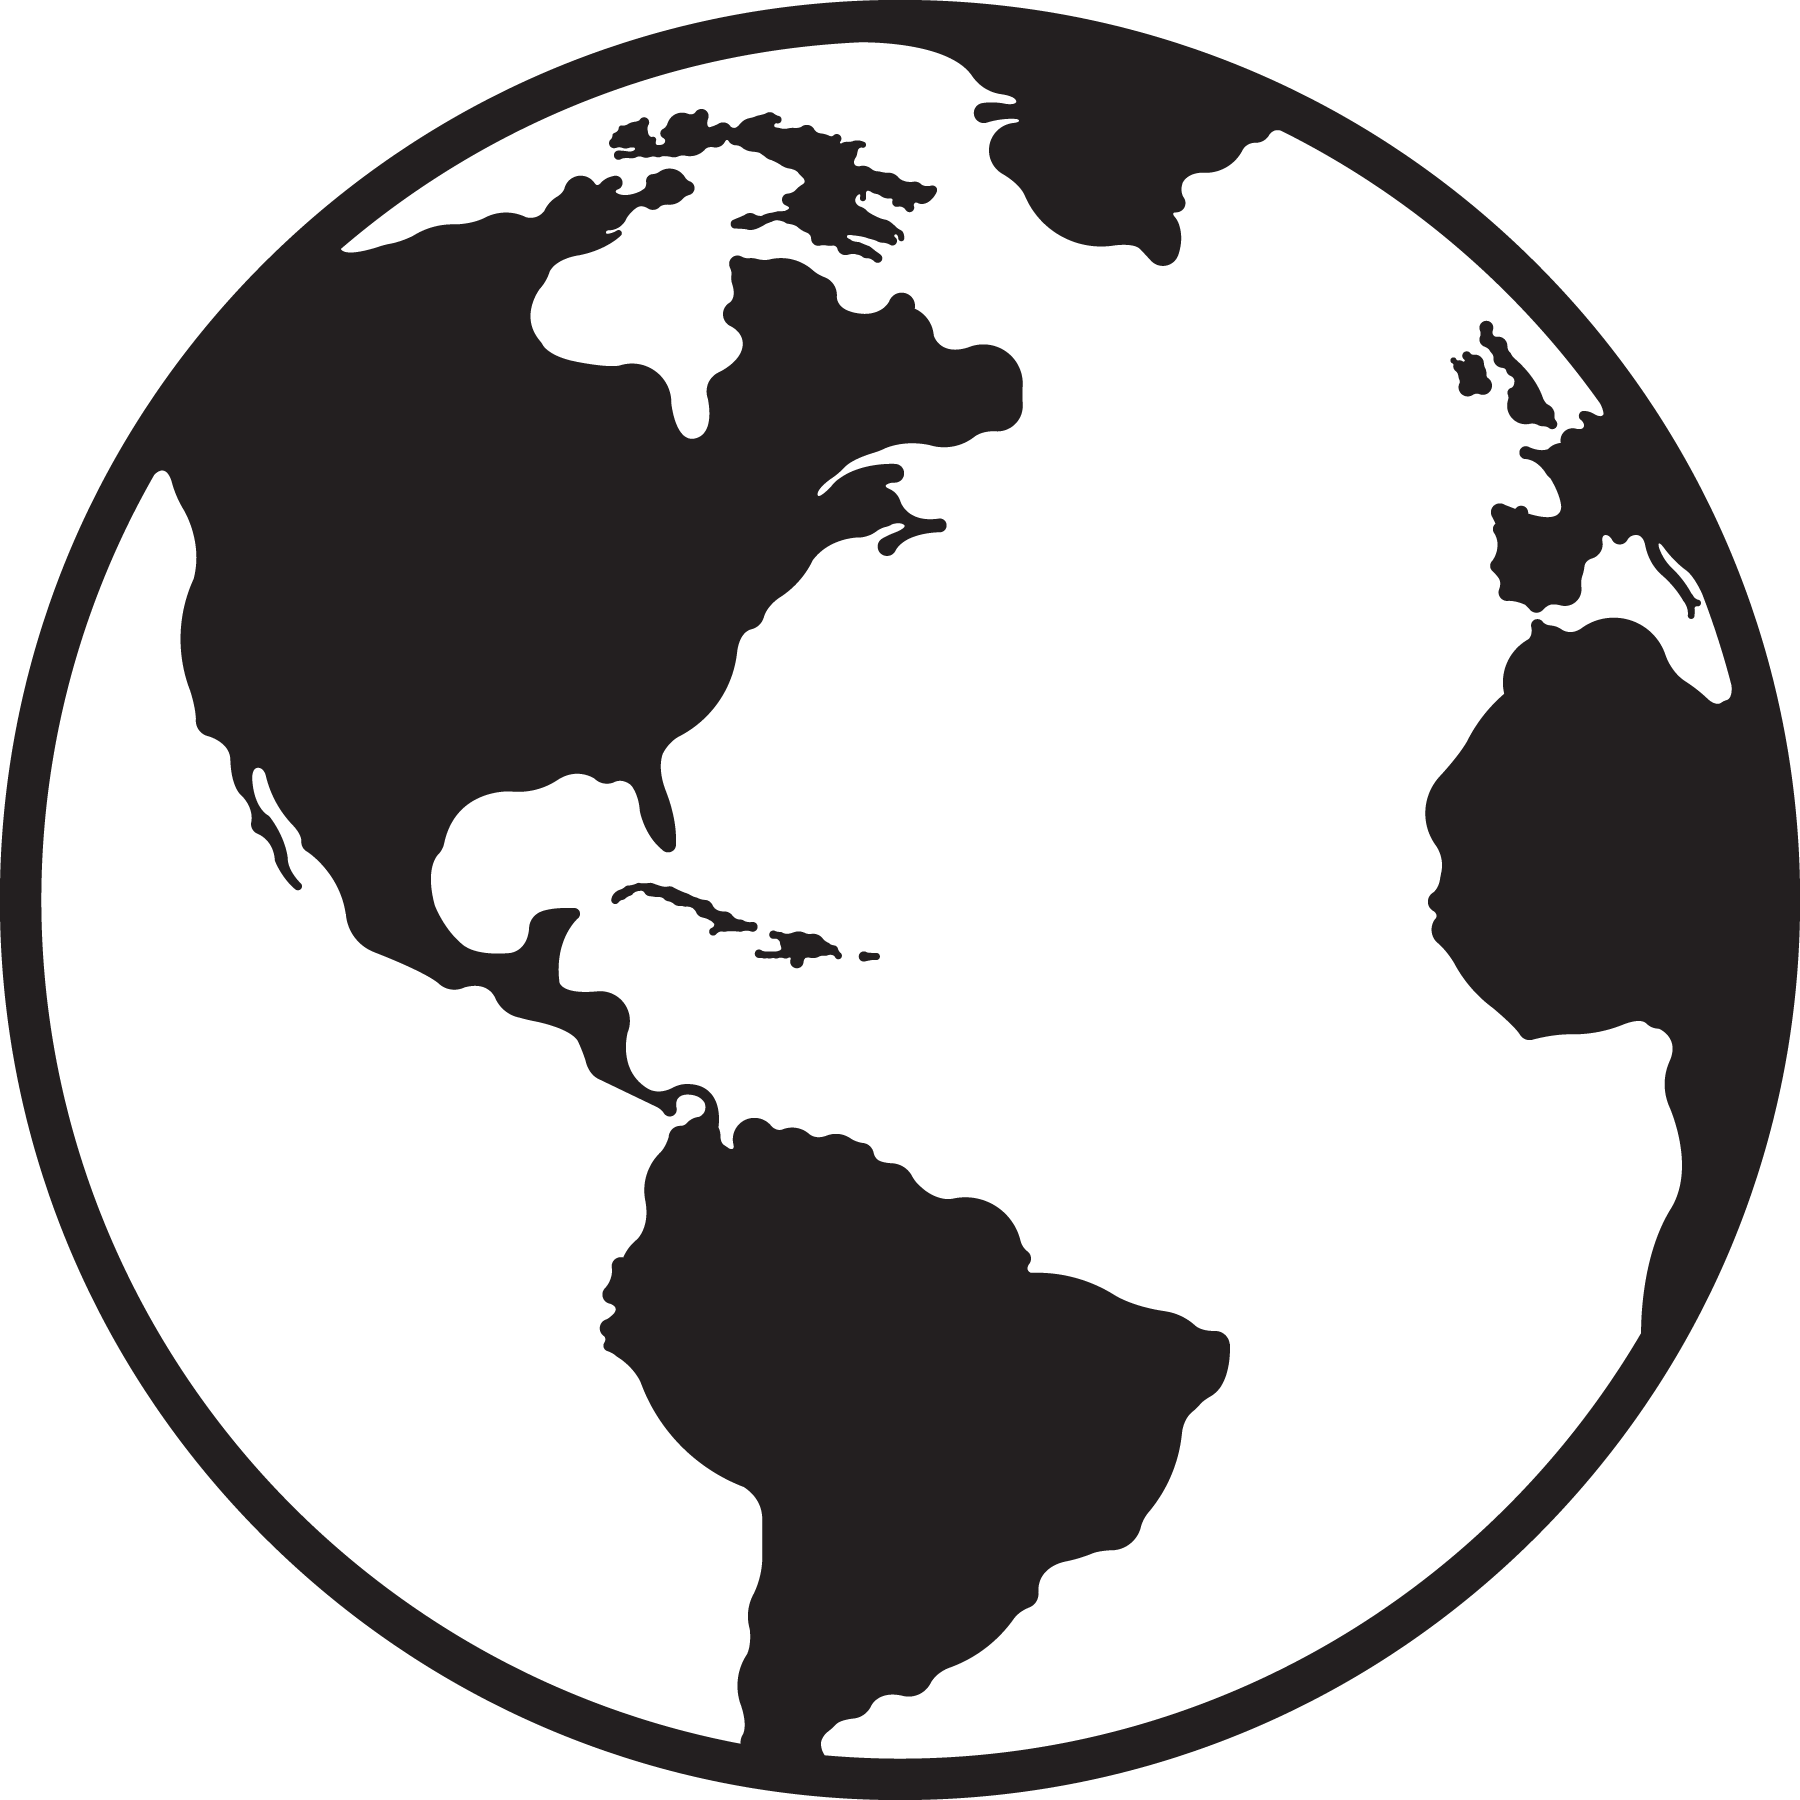 Black and white globe clipart clipground